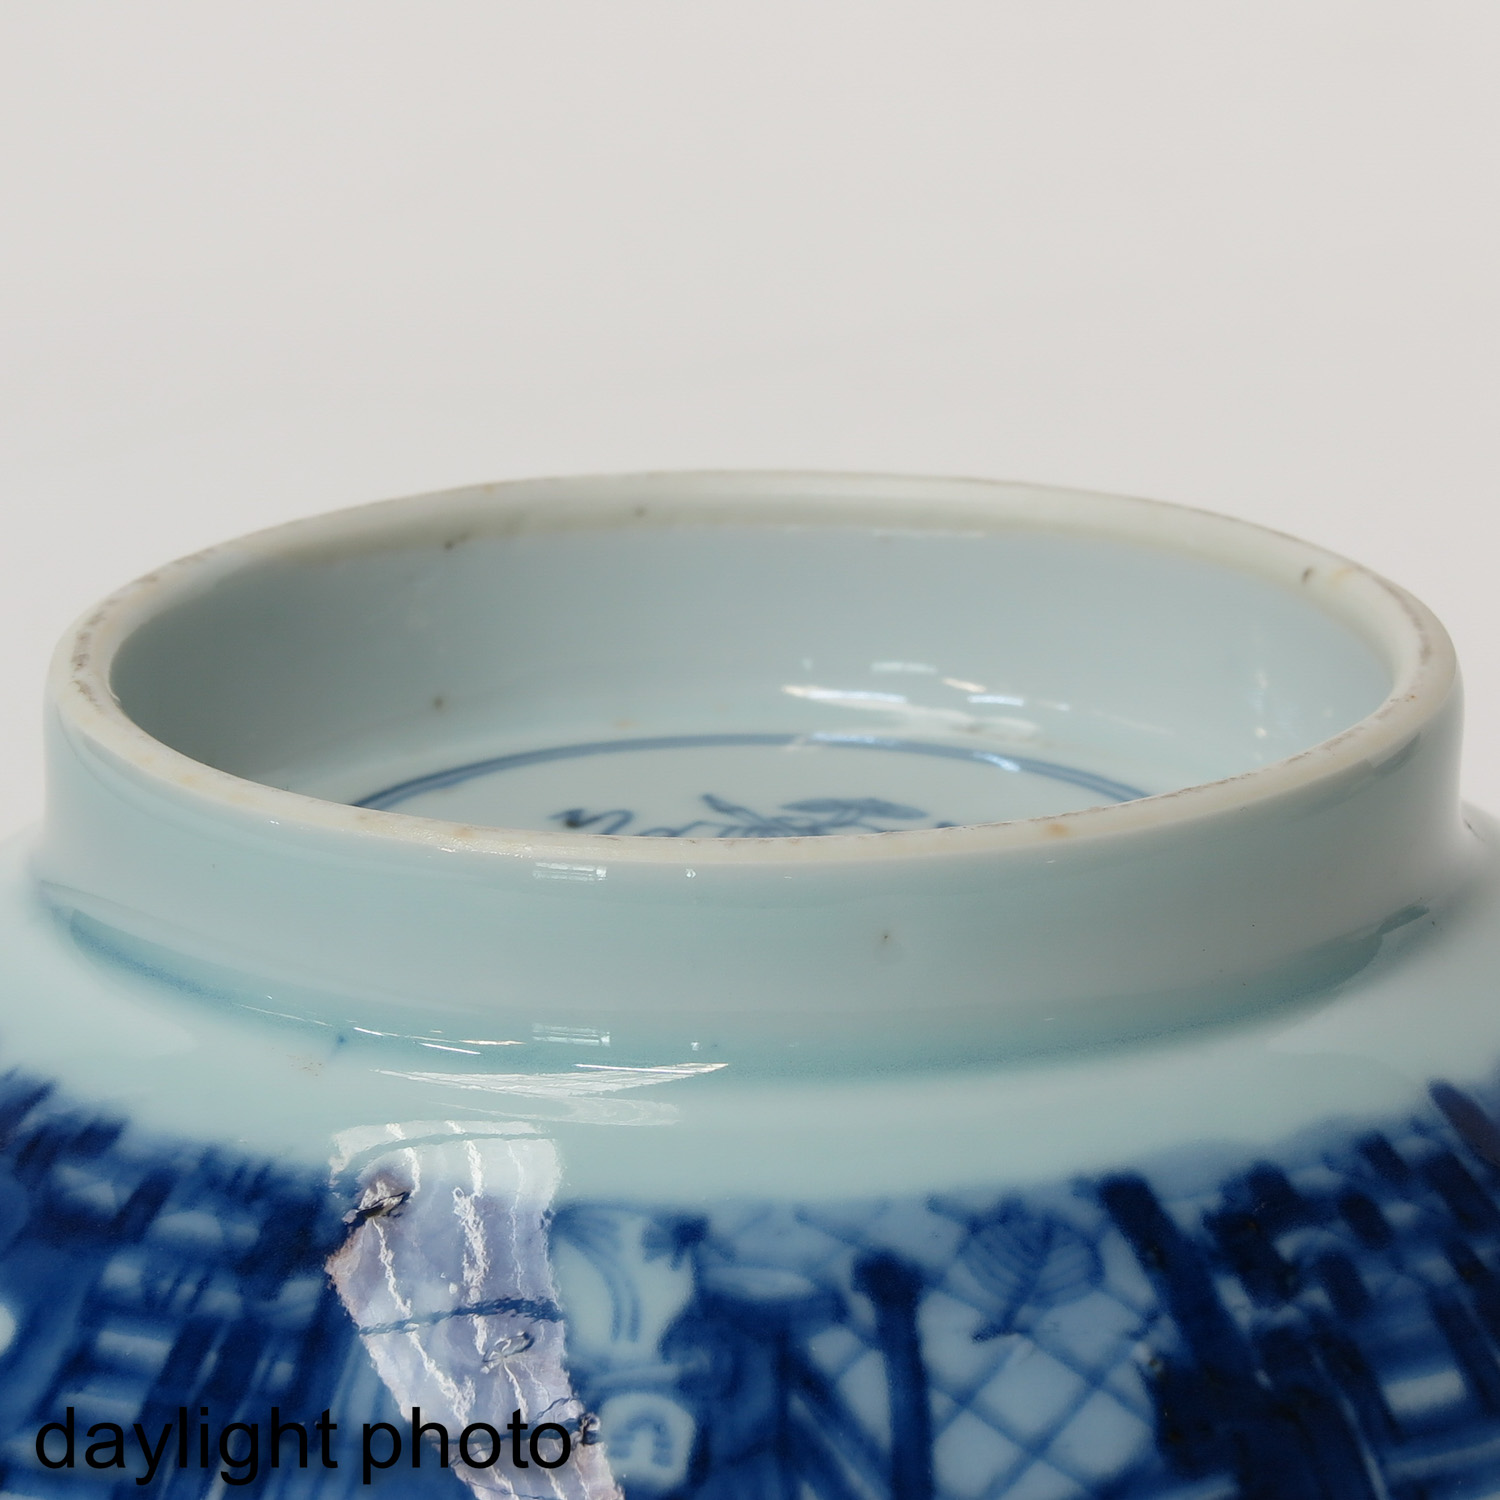 A Series of 3 Blue and White Bowls - Image 8 of 10